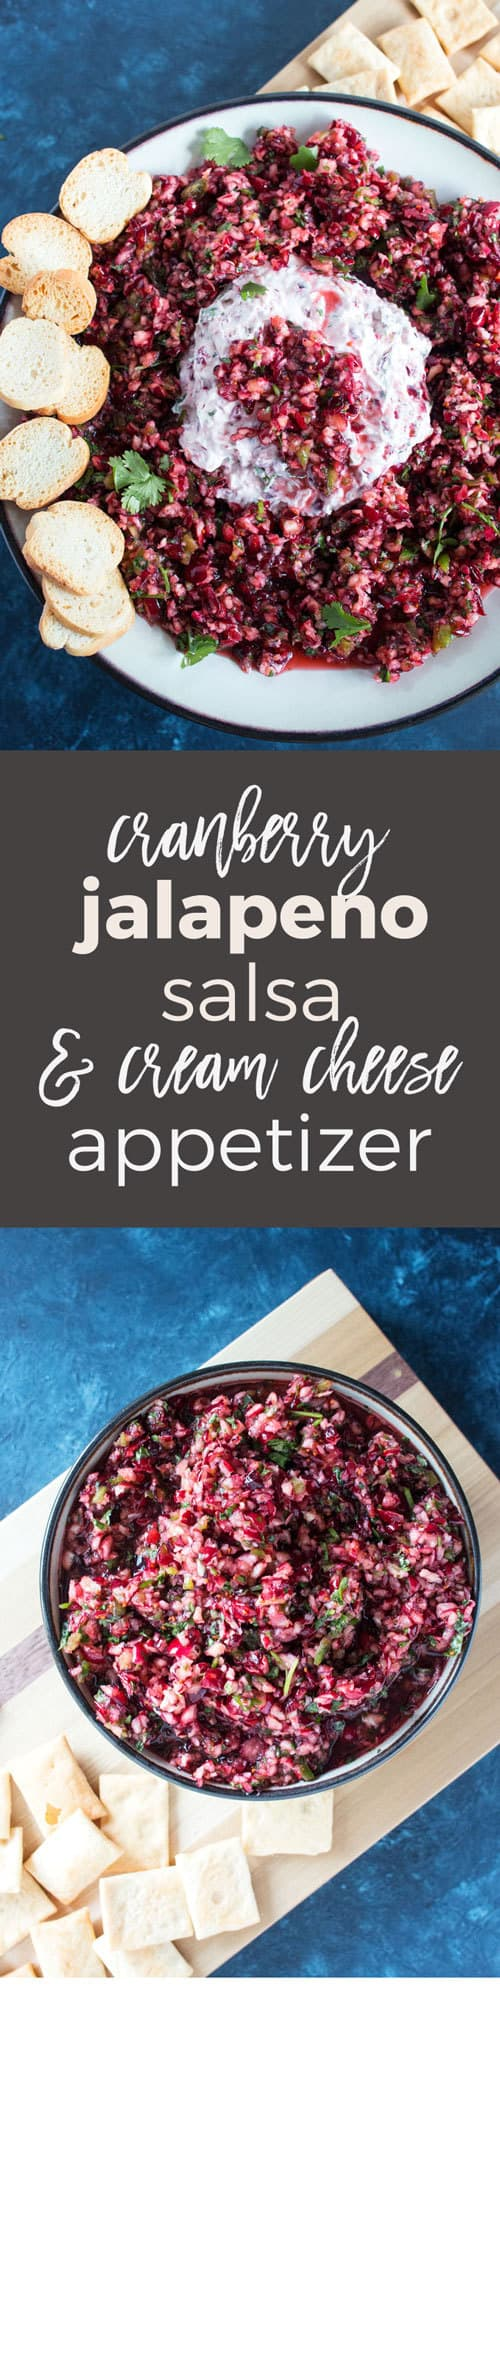 This cranberry jalapeño cream cheese appetizer is the perfect easy addition to your Thanksgiving table! It's no-cook and can be ready in 10 minutes.